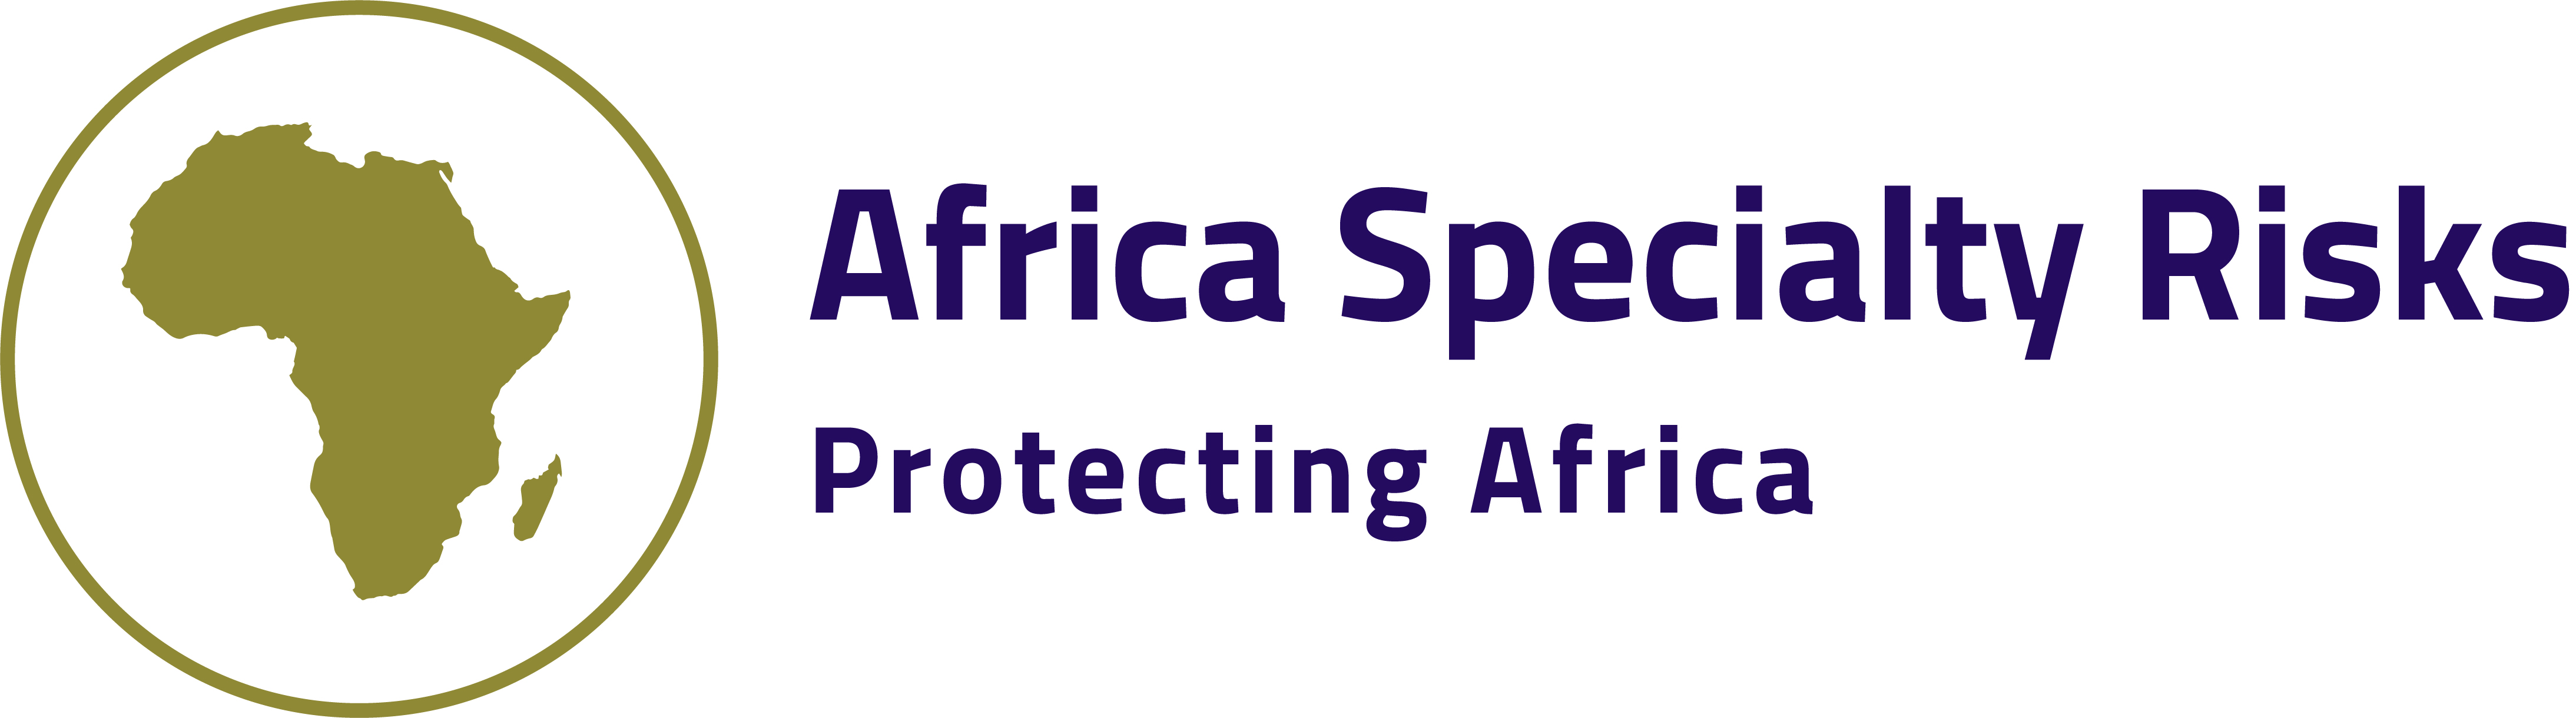 Africa Specialty Risks